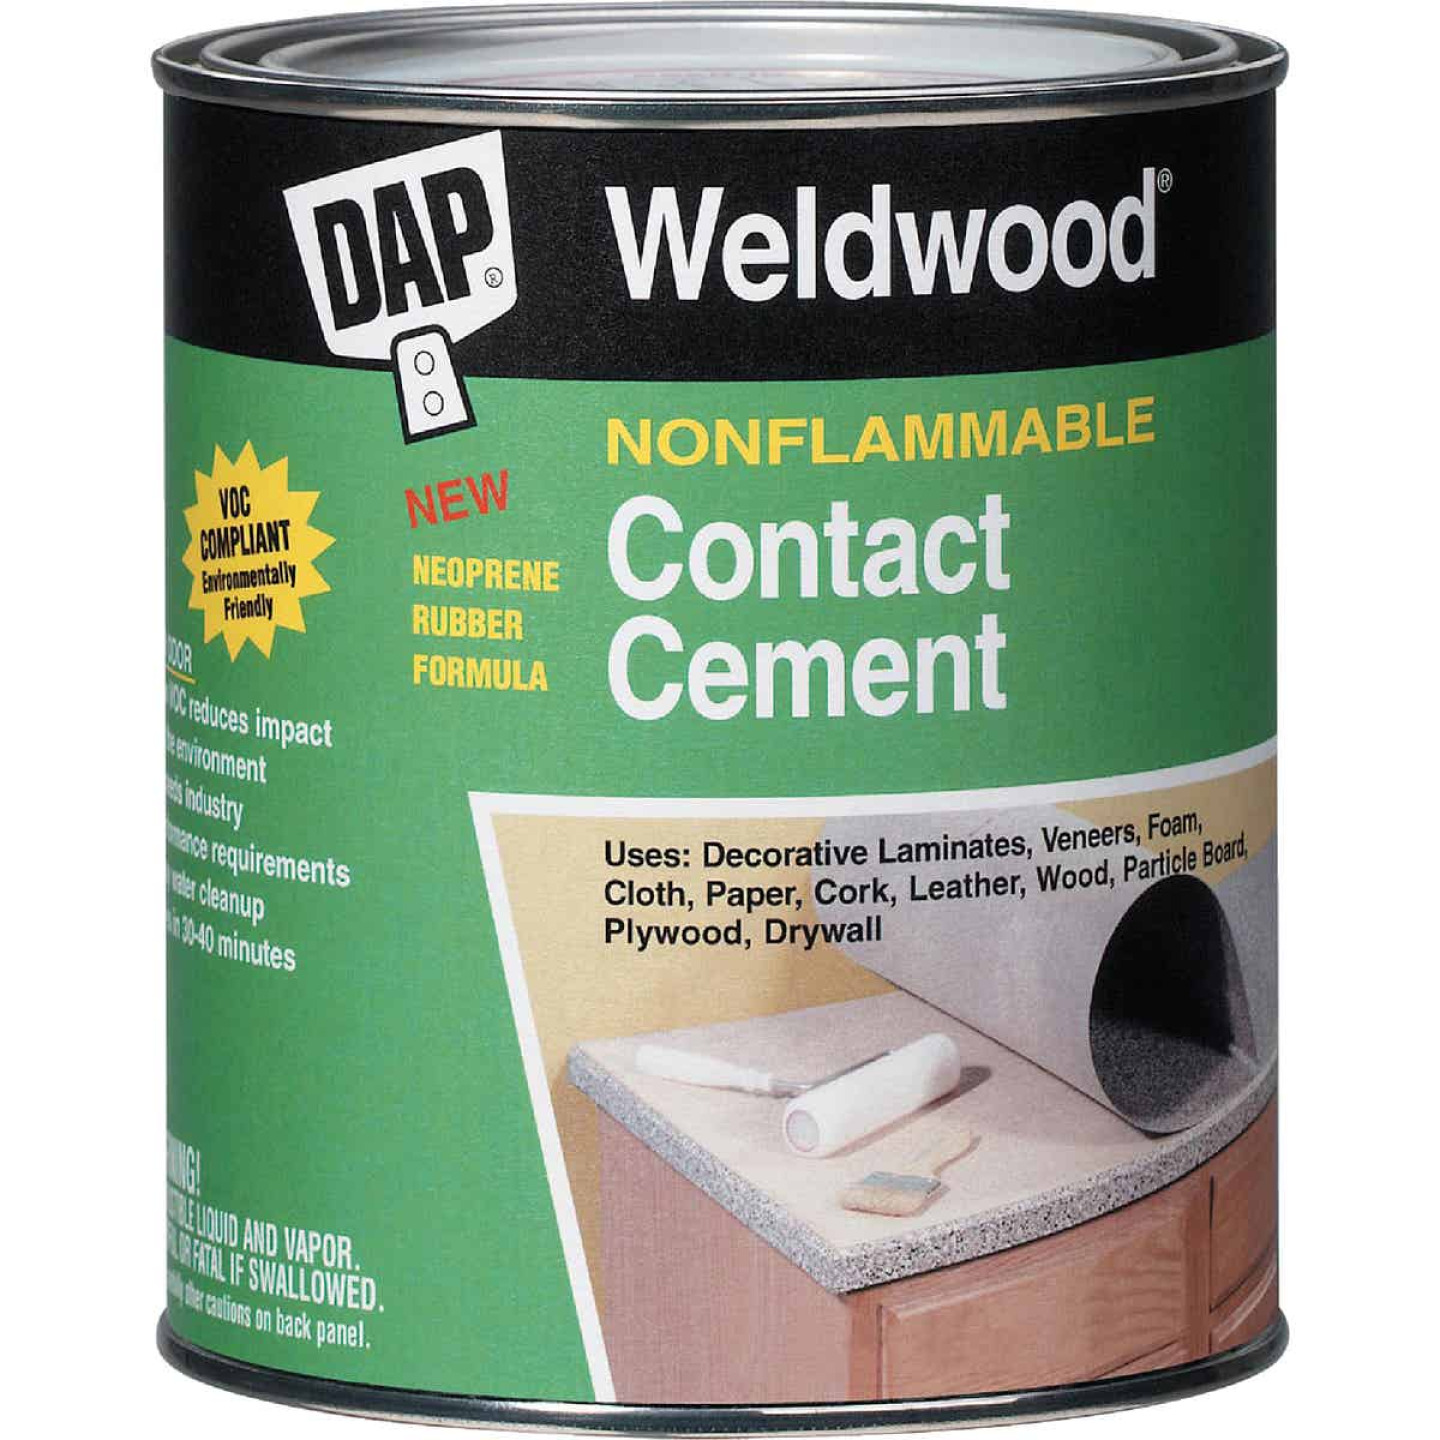 DAP Weldwood Gal. Nonflammable Contact Cement Image 1